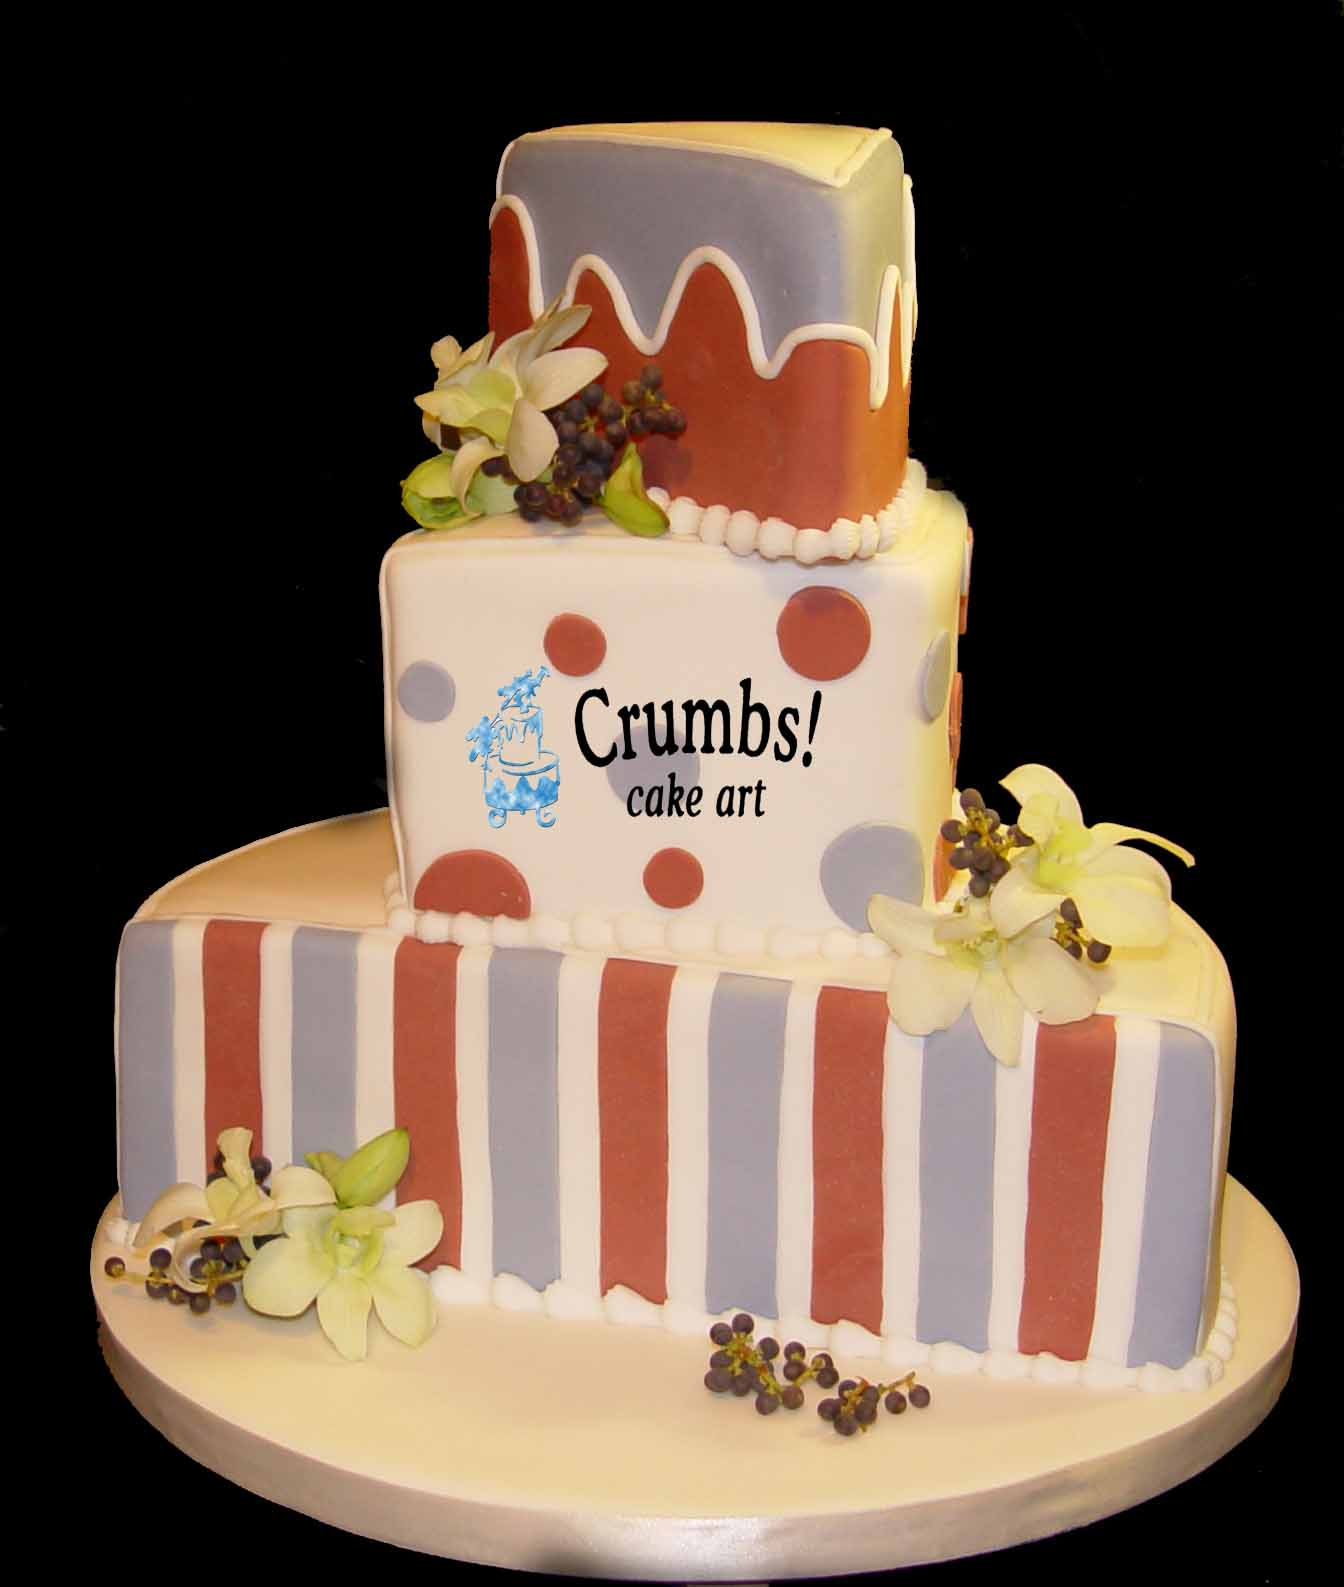 Artistic Cake Design Classes : Things Festive Wedding Blog Amazing Pink Wedding Cakes ...